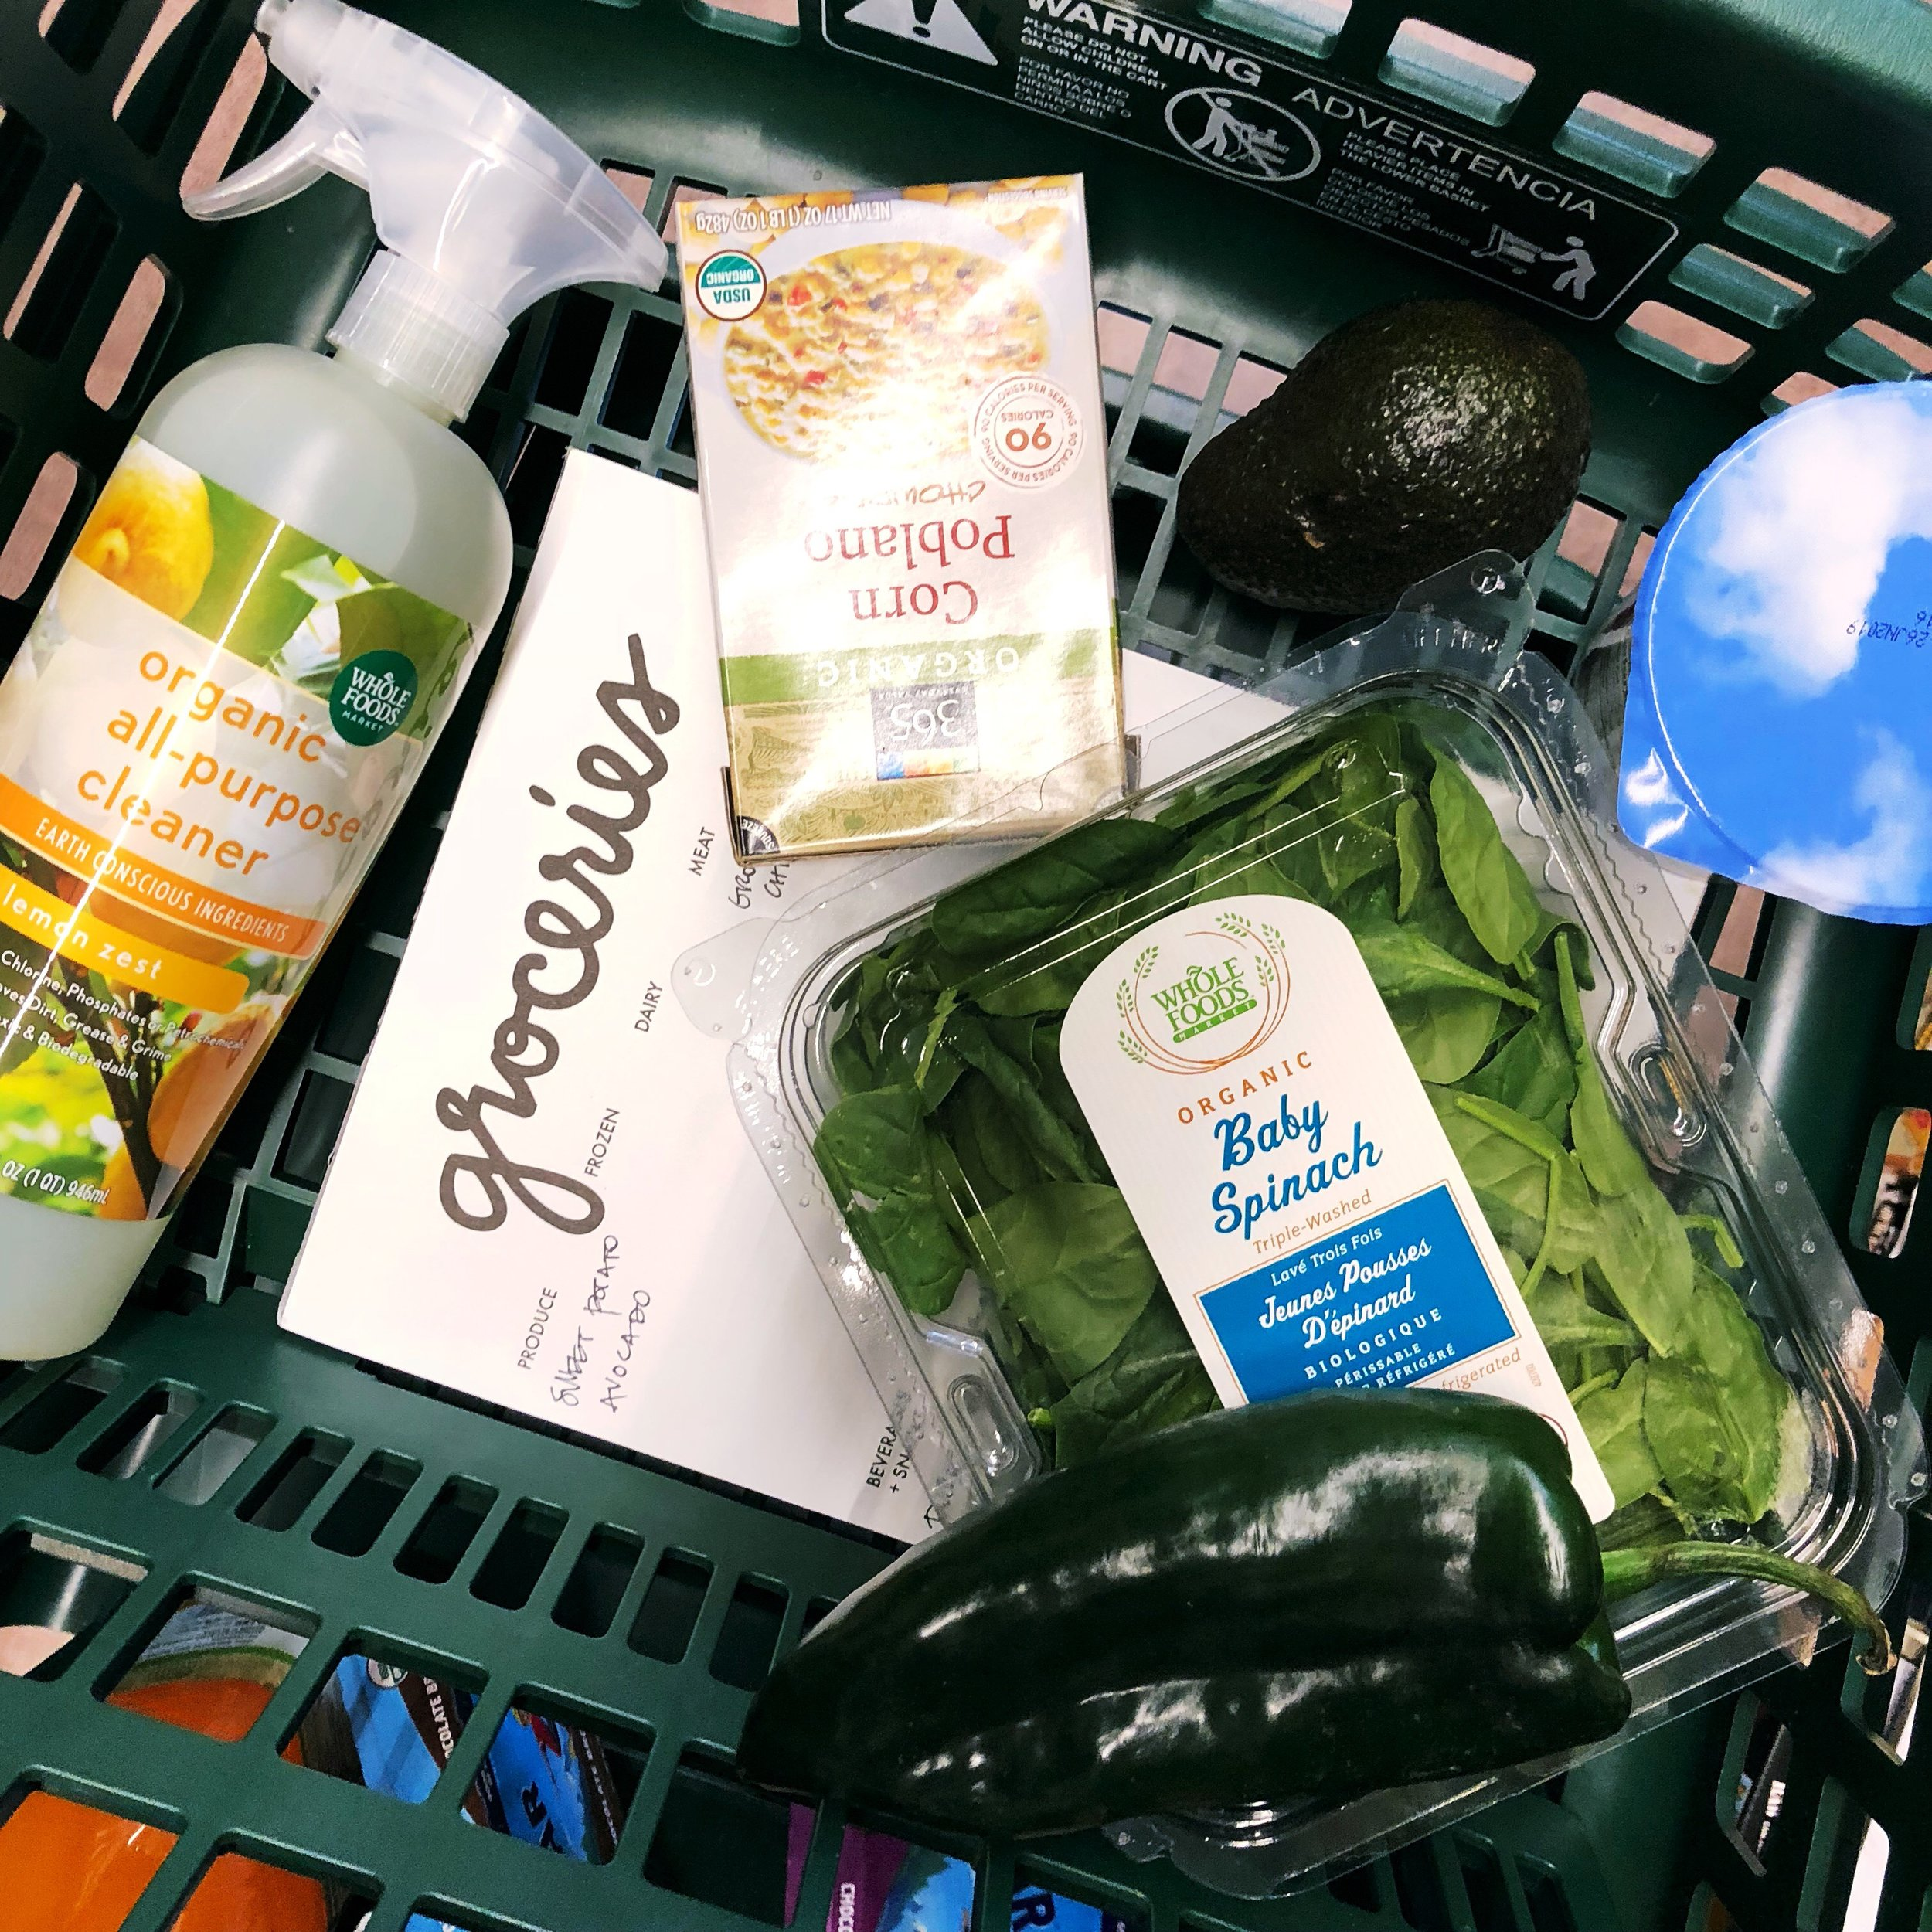 When I have the time, I tend to shop at several stores (favorites are Costco, Whole Foods, Trader Joes and Aldi).